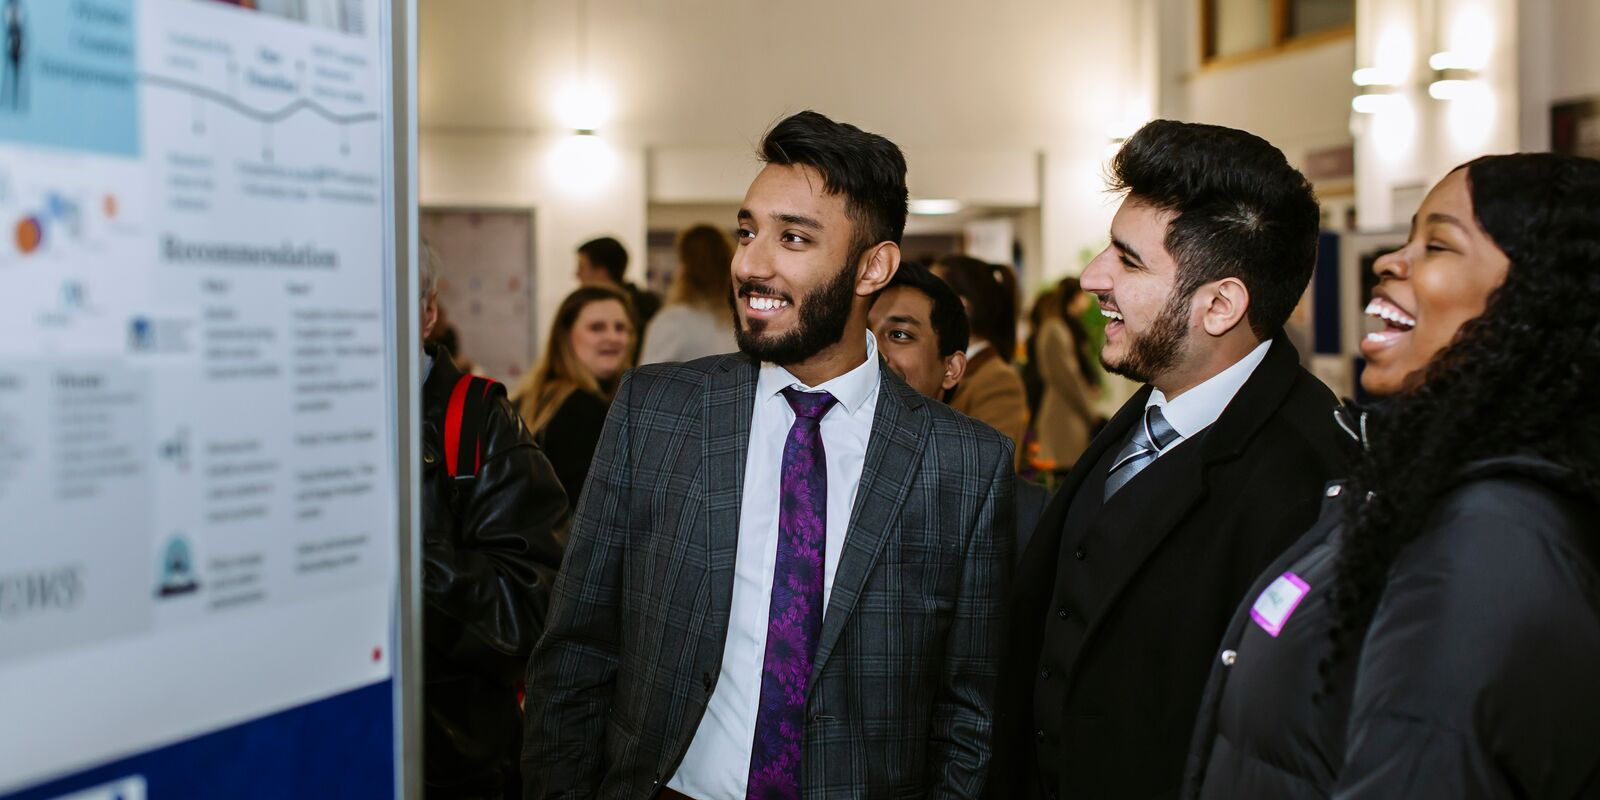 Male and female University of Portsmouth students in Faculty of Business and Law